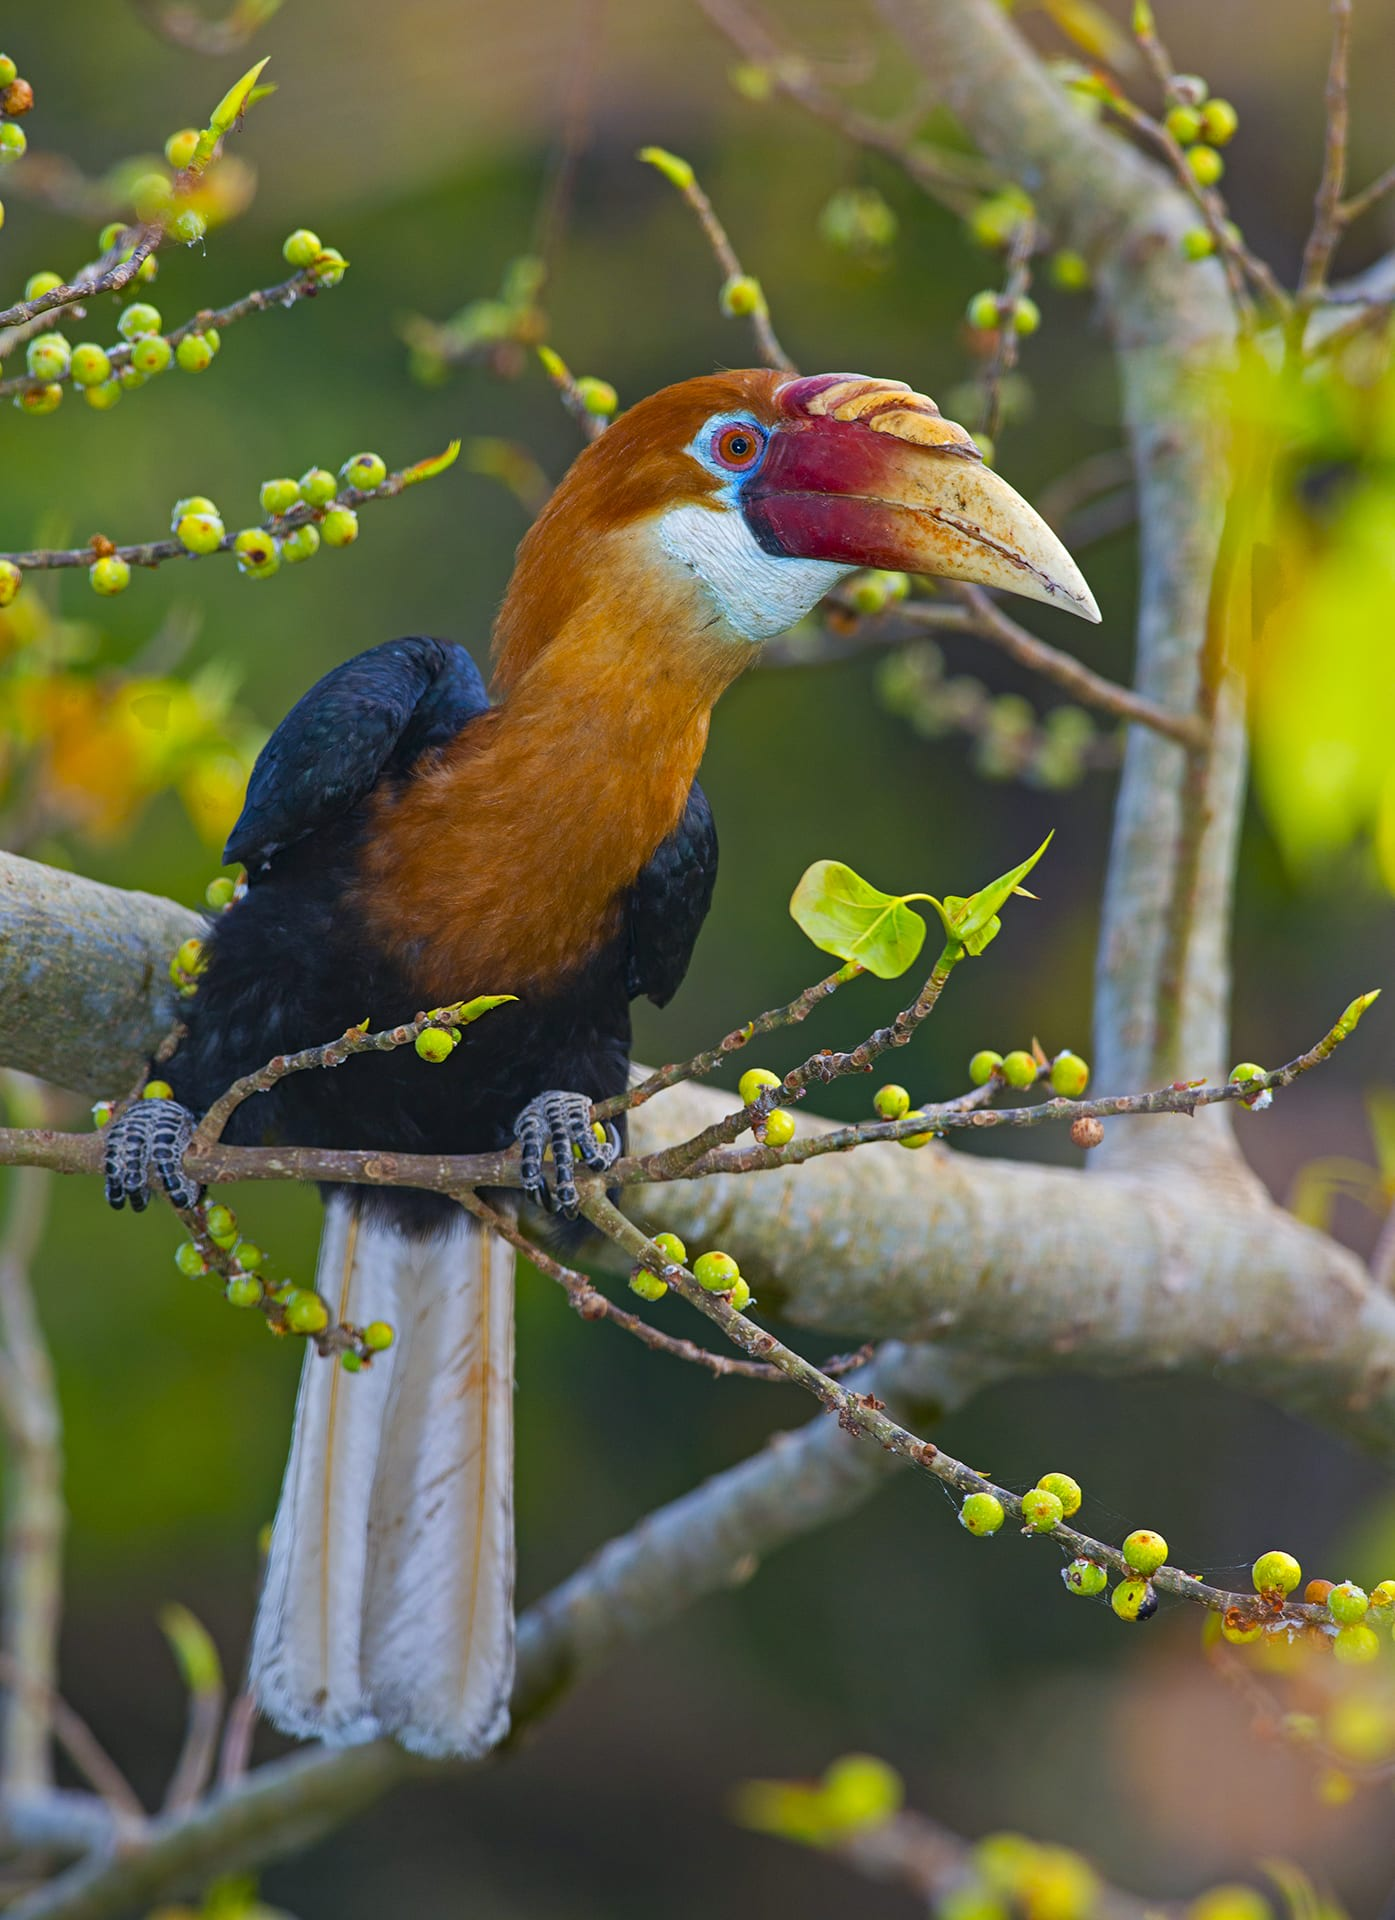 """Hornbills are frugivores for most of the year, except during breeding and chick-rearing season, when they feed on insects for higher protein intake. Their food preferences have changed over the years, says Dr Manchi. """"Earlier, species such as Canarium euphyllum and Anglaia andamanica were not recorded as a food sources, but my research showed it was a dominant part of their diet."""""""